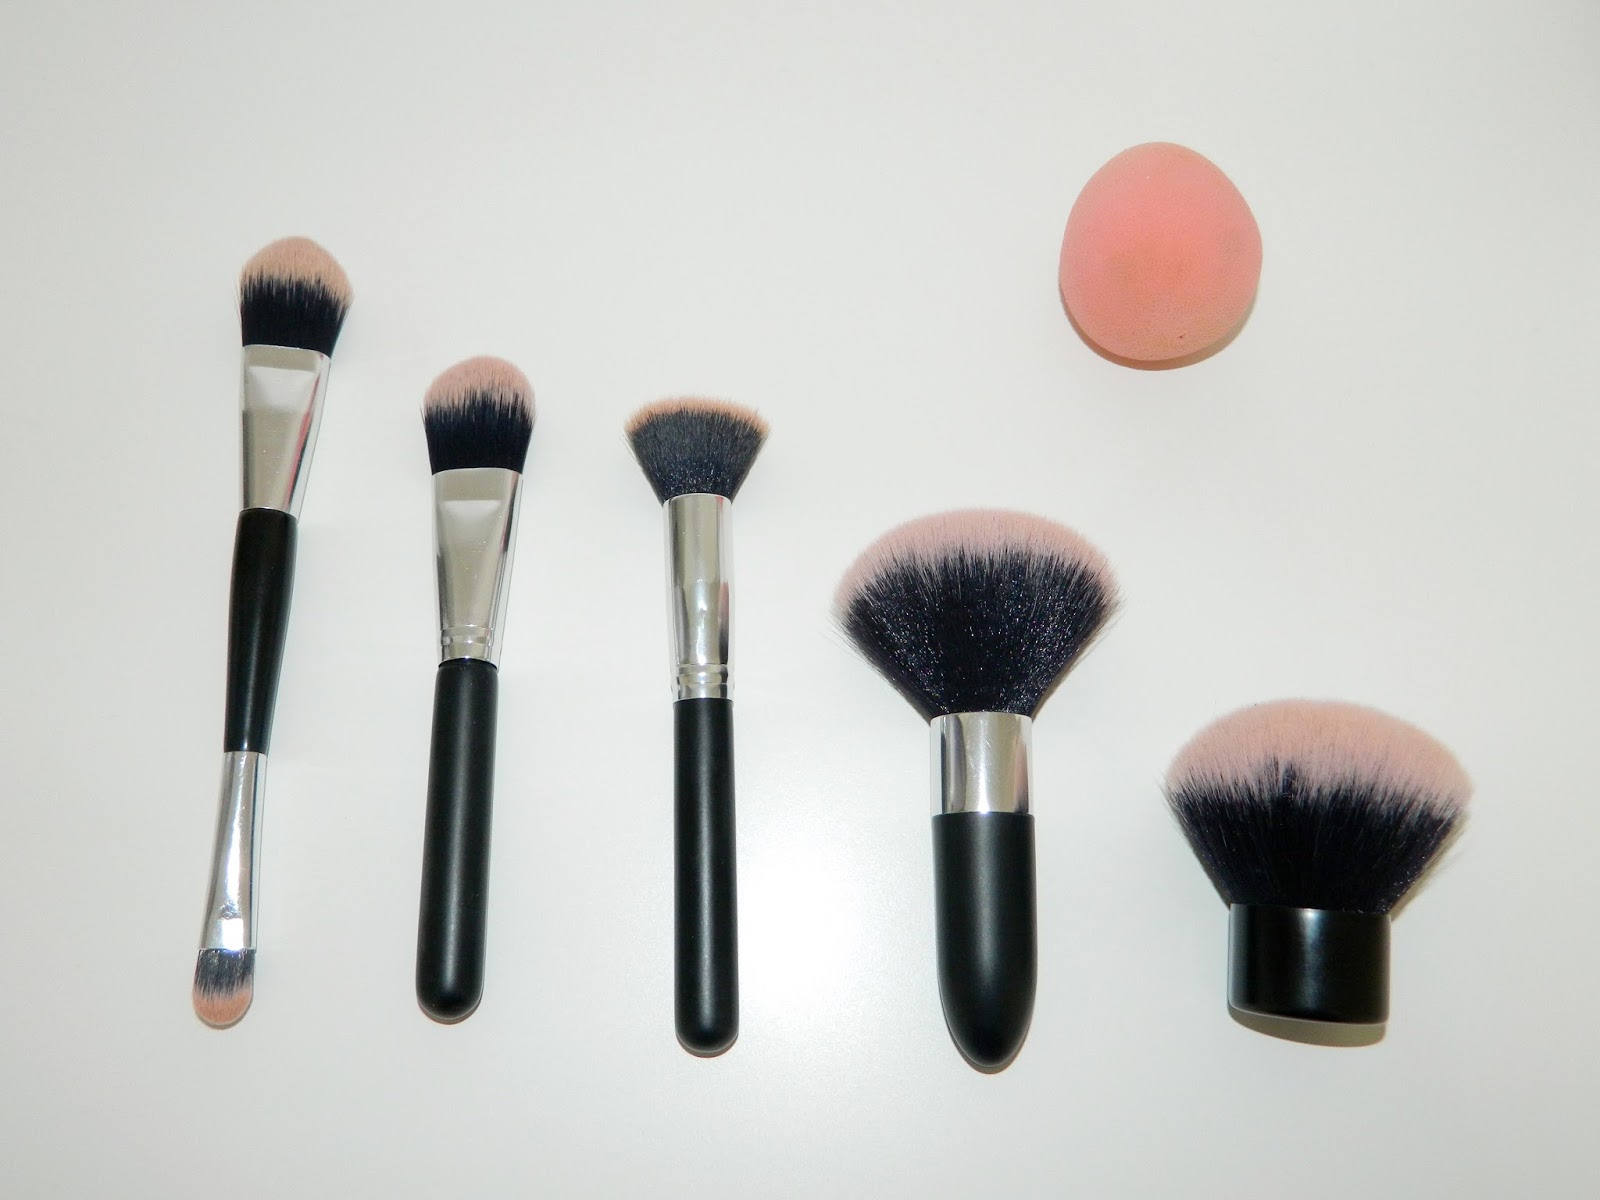 f0916056a40 Reviews with Michelle: Primark Beauty Make Up Brush Review!